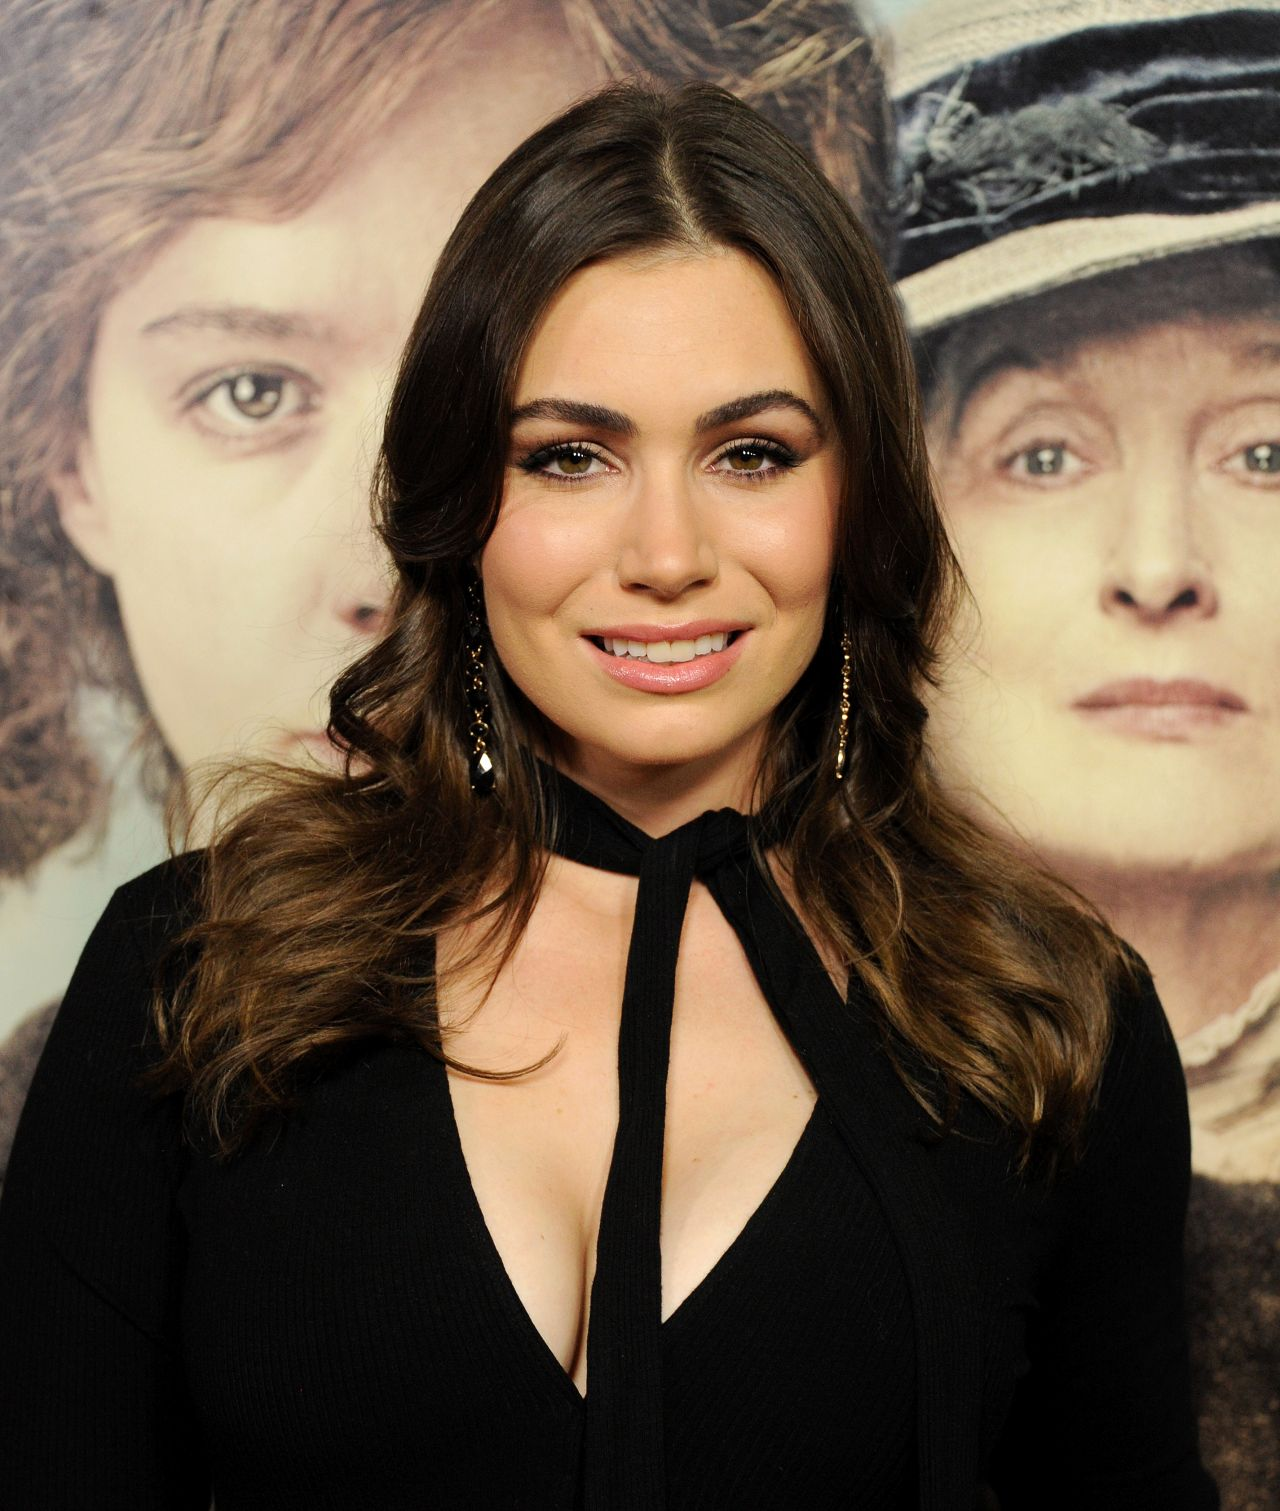 sophie simmons how tall